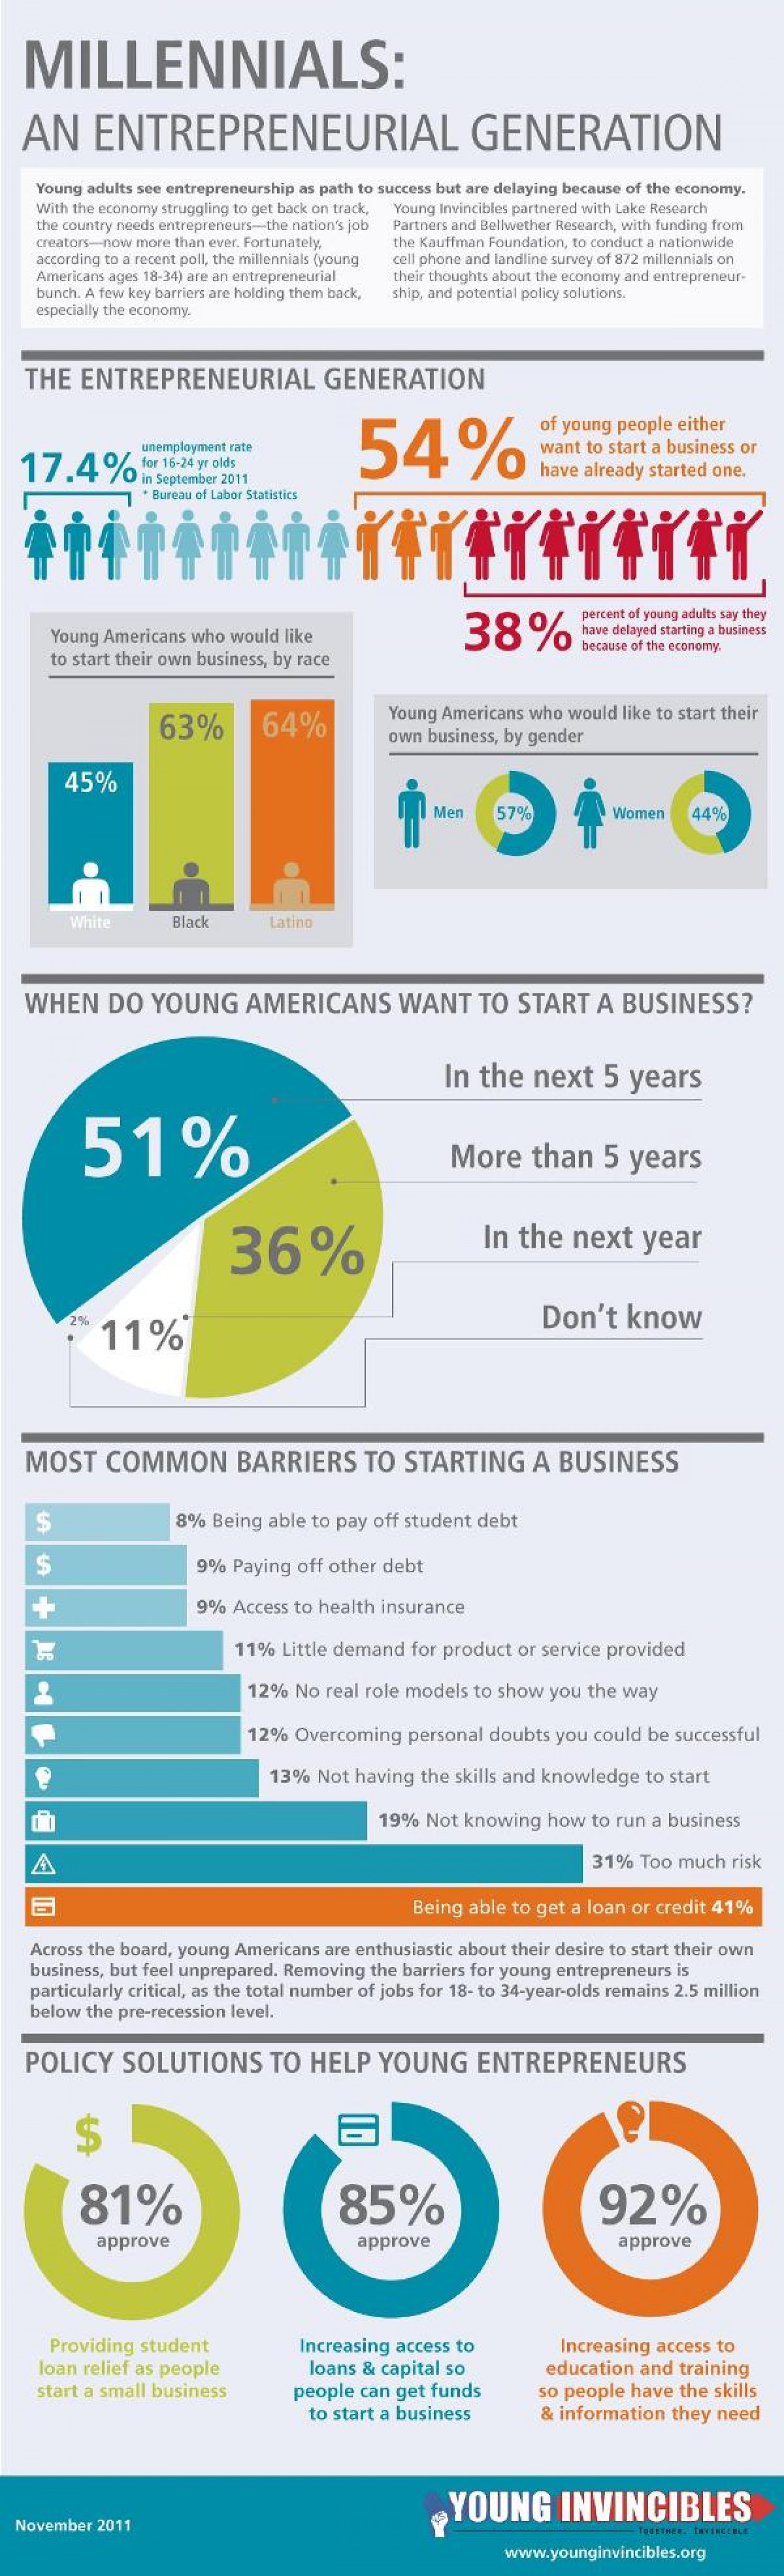 Millennials Are An Entrepreneurial Generation Infographic